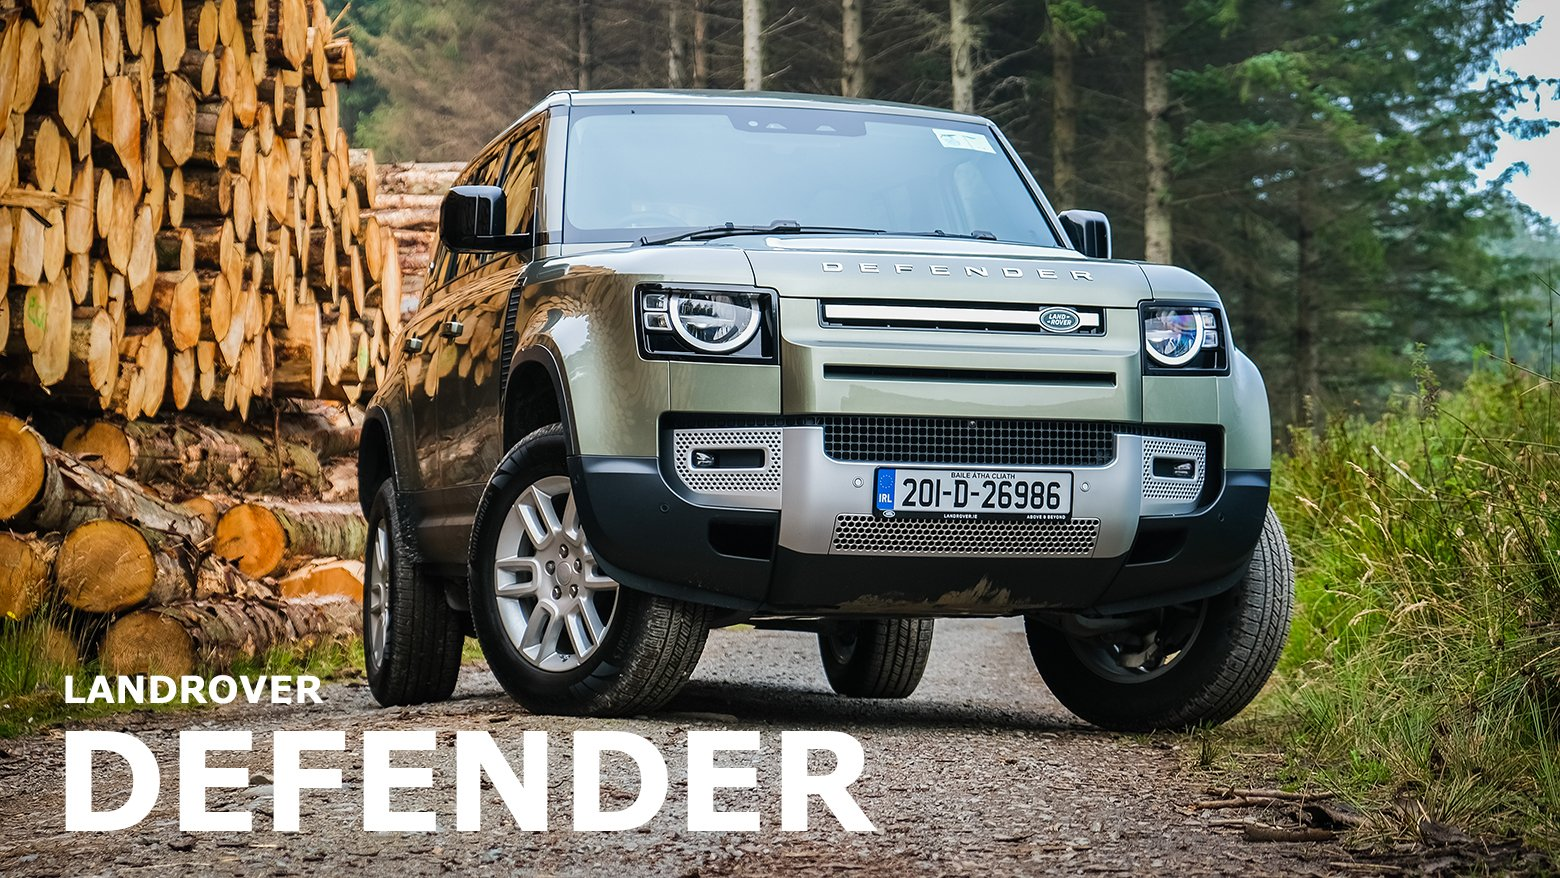 Landrover Defender Promotional Video Fiona Madden Photography